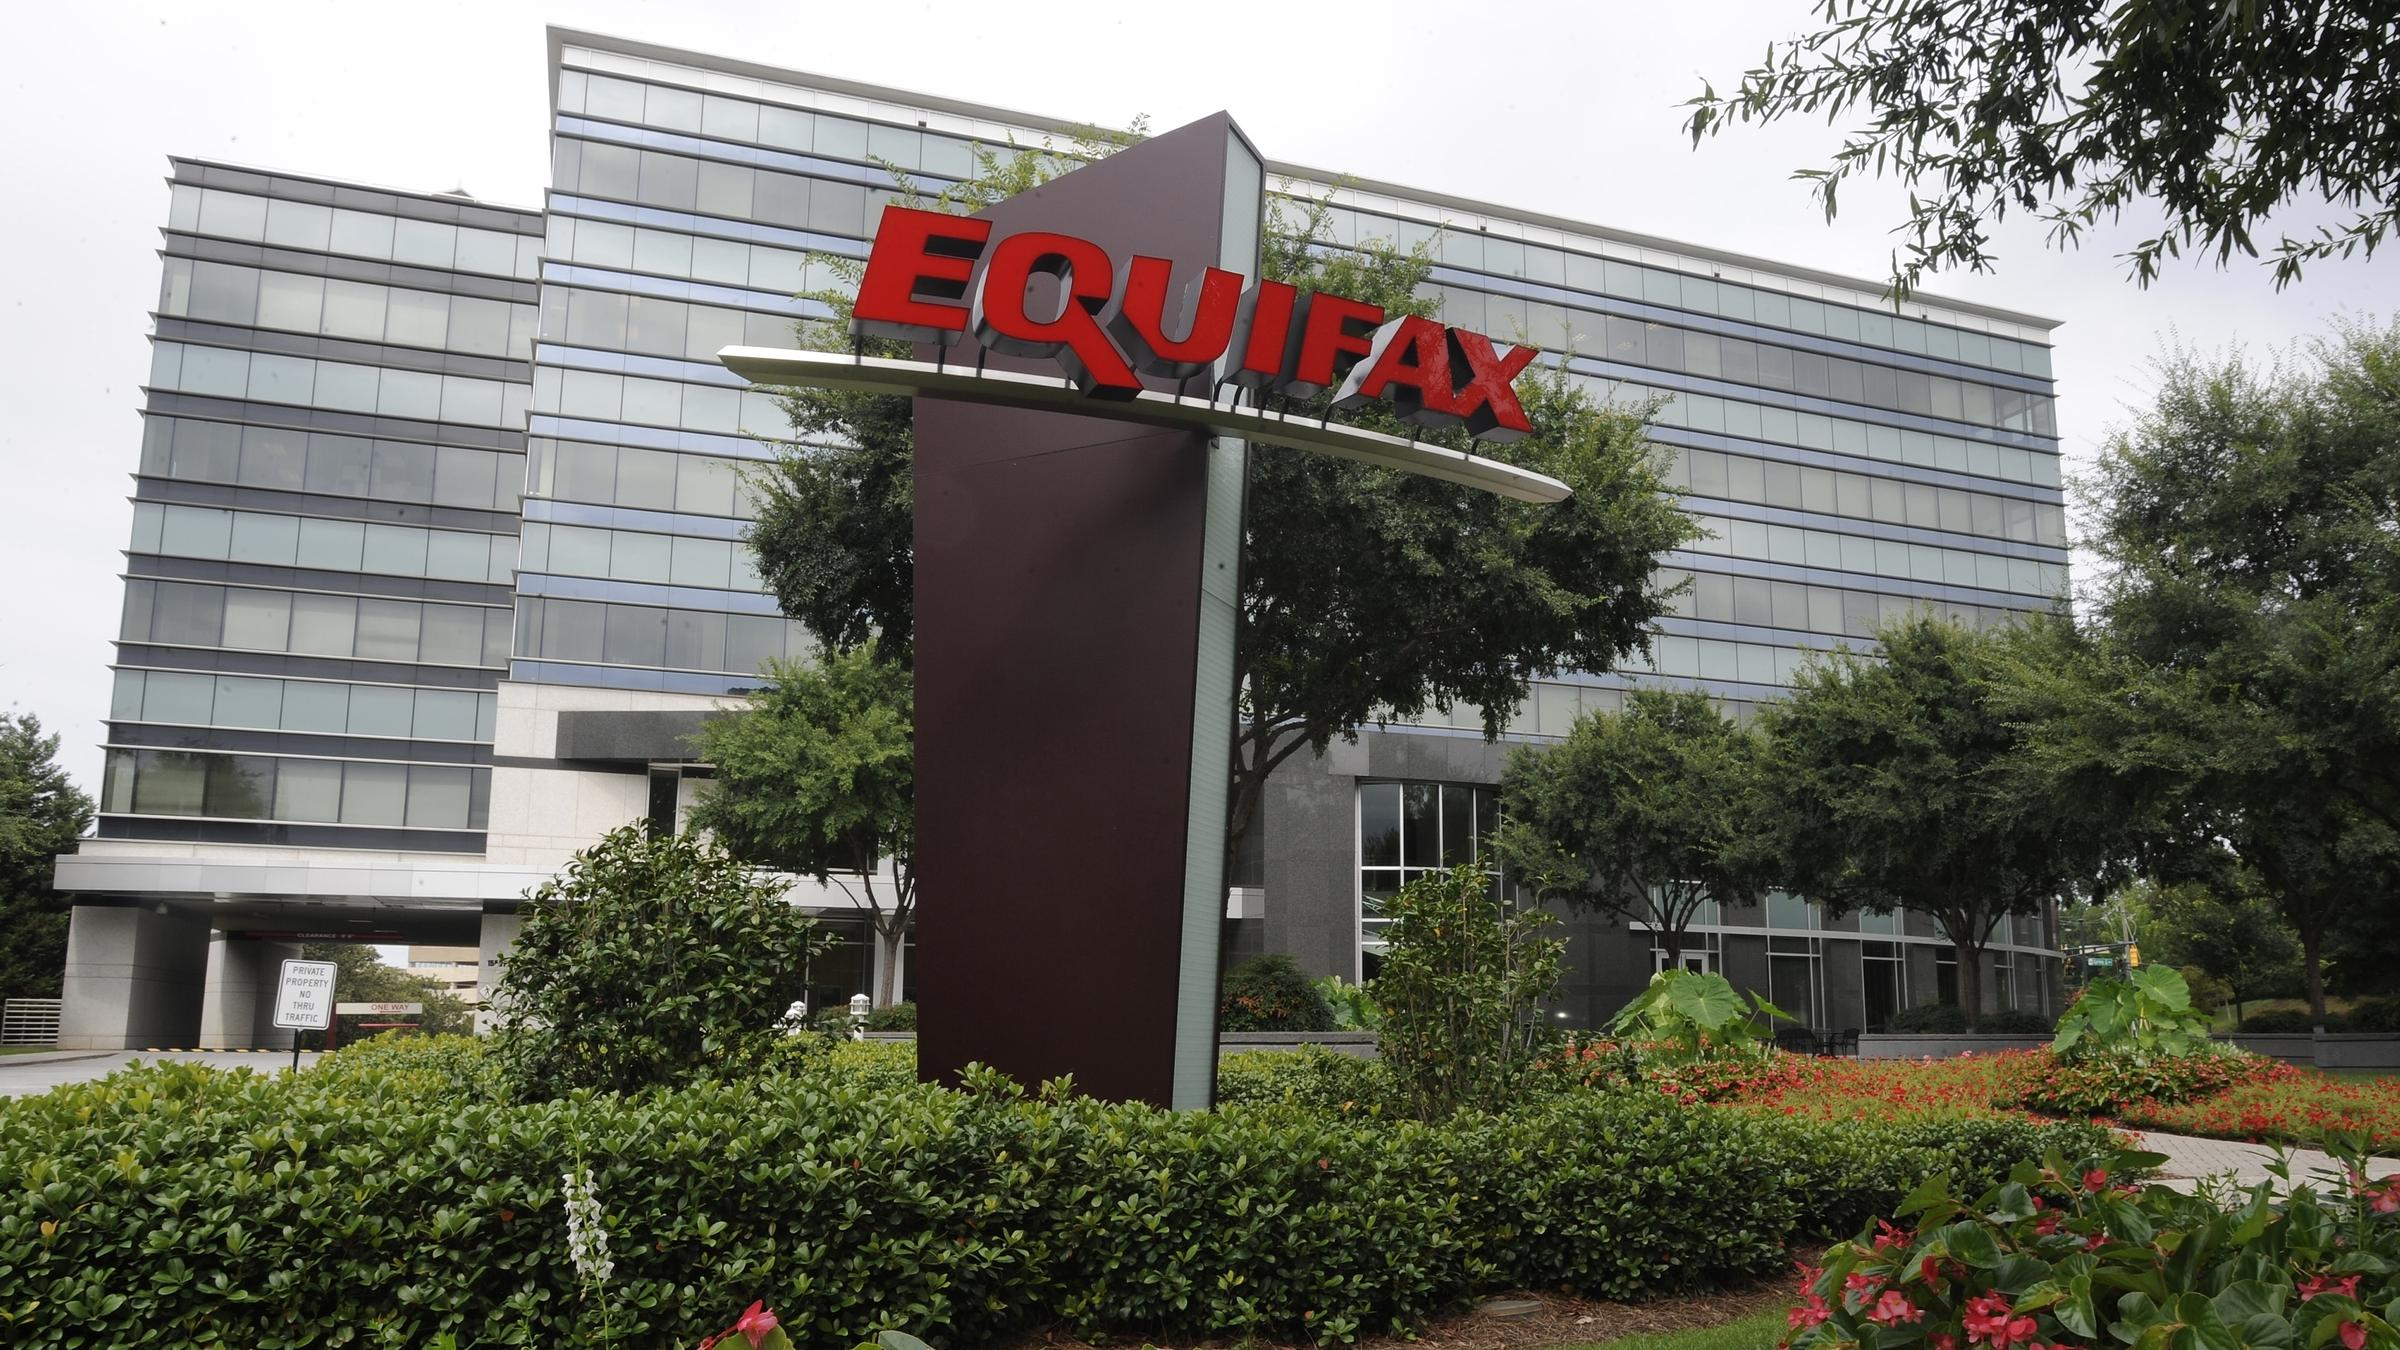 Equifax CEO Richard Smith Resigns After Backlash Over Massive Data Breach